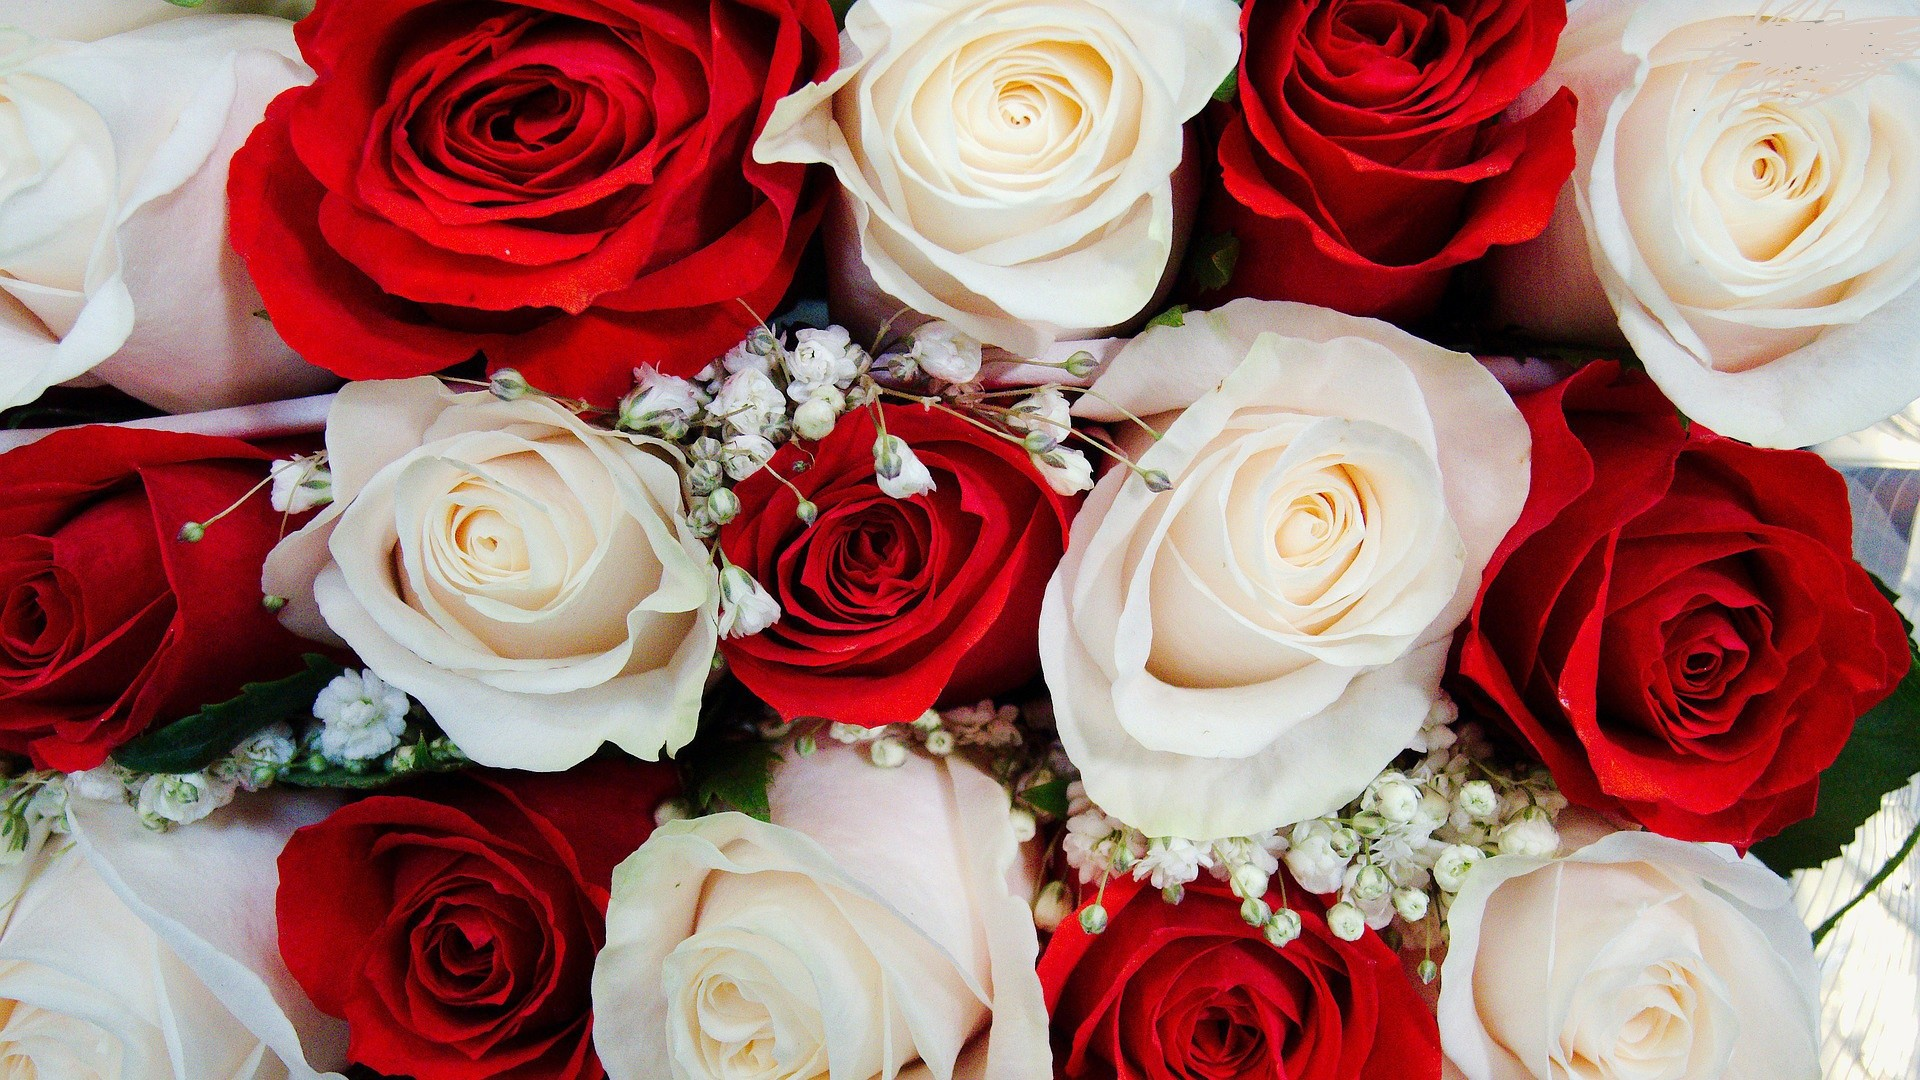 Res: 1920x1080, Red And White Rose Wallpaper